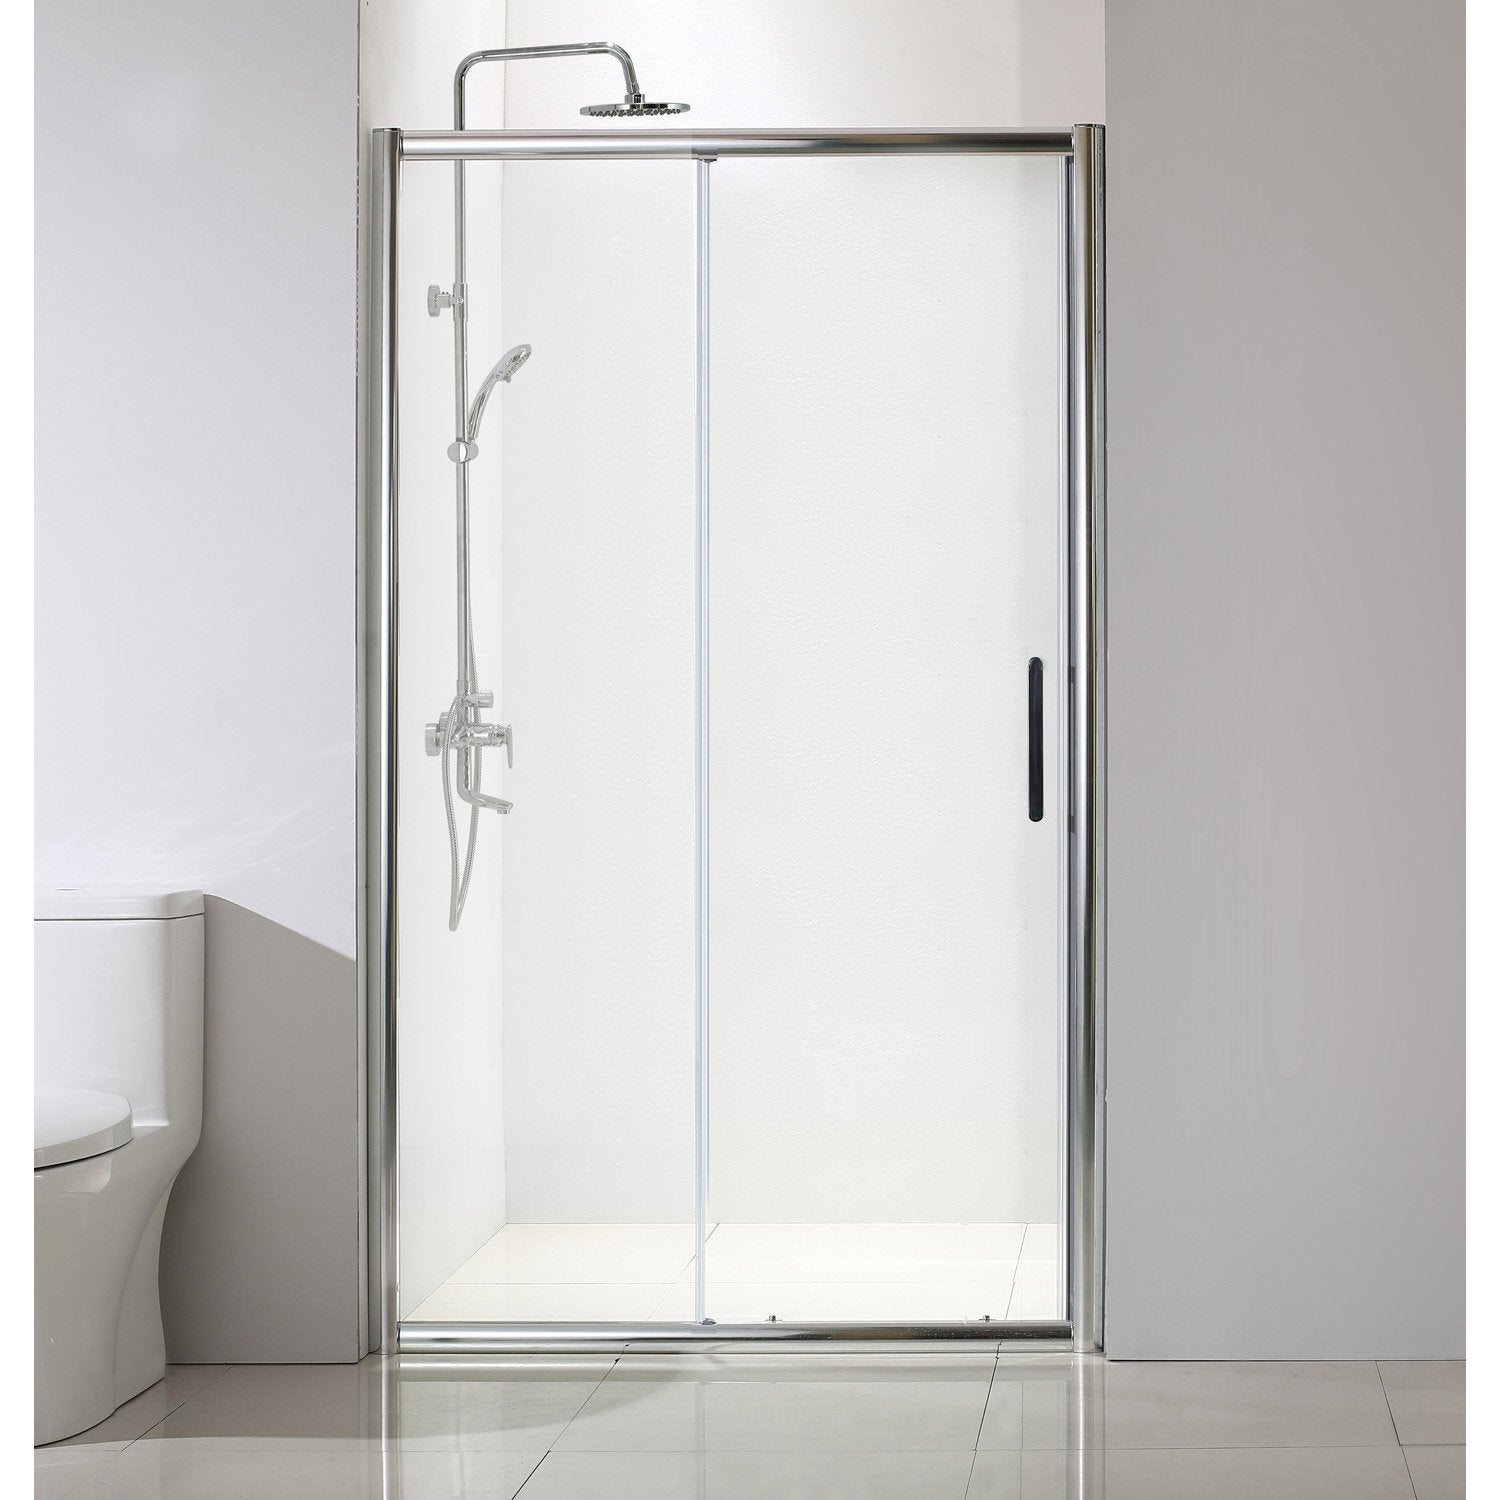 Porte de douche 120 cm maison design for Porte de douche leroy merlin